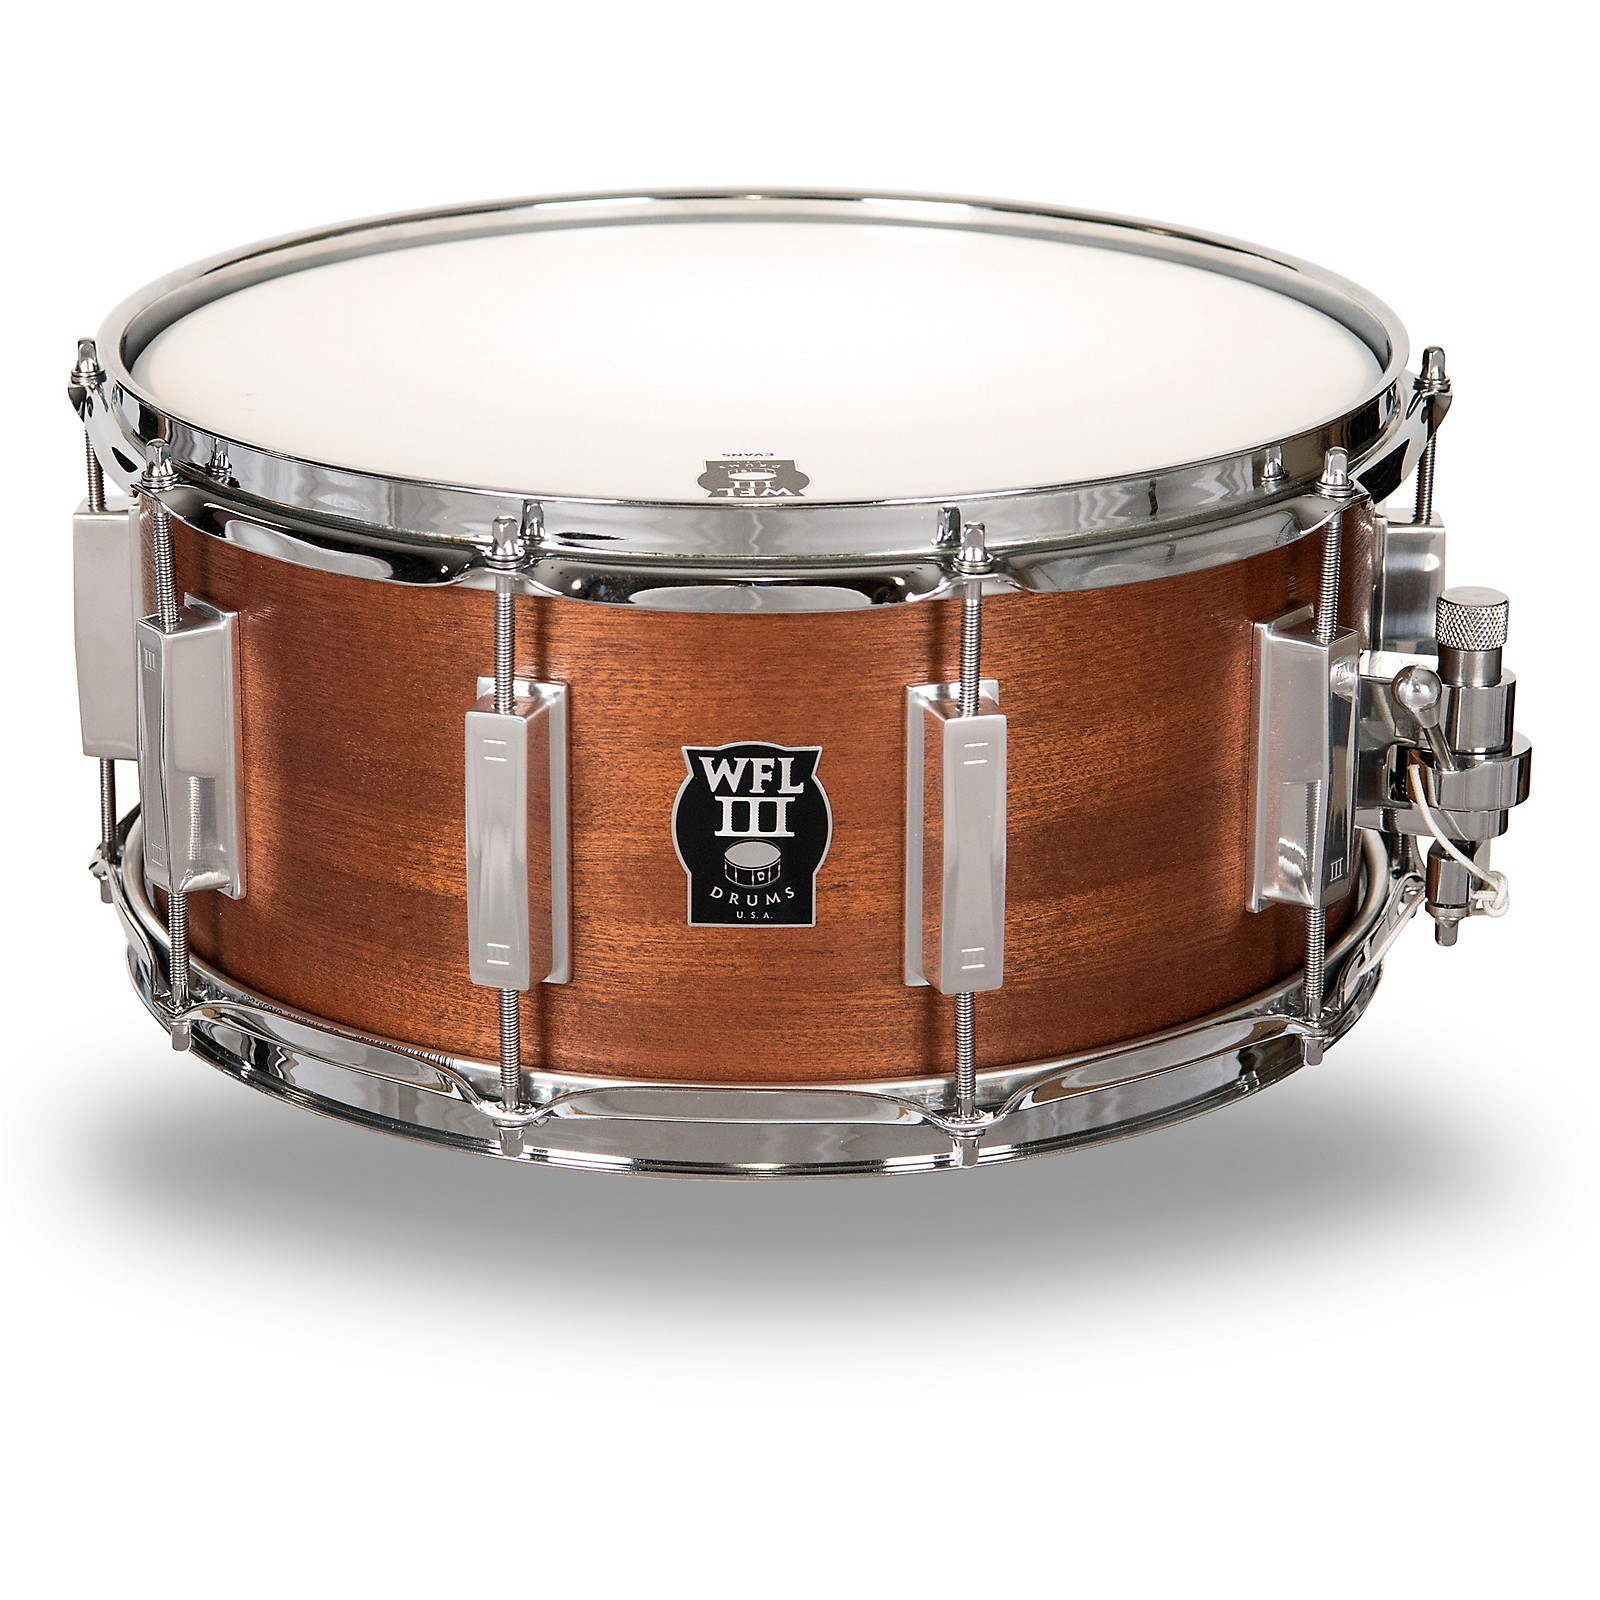 WFLIII Drums Classic Wood Mahogany Snare Drum with Chrome Hardware